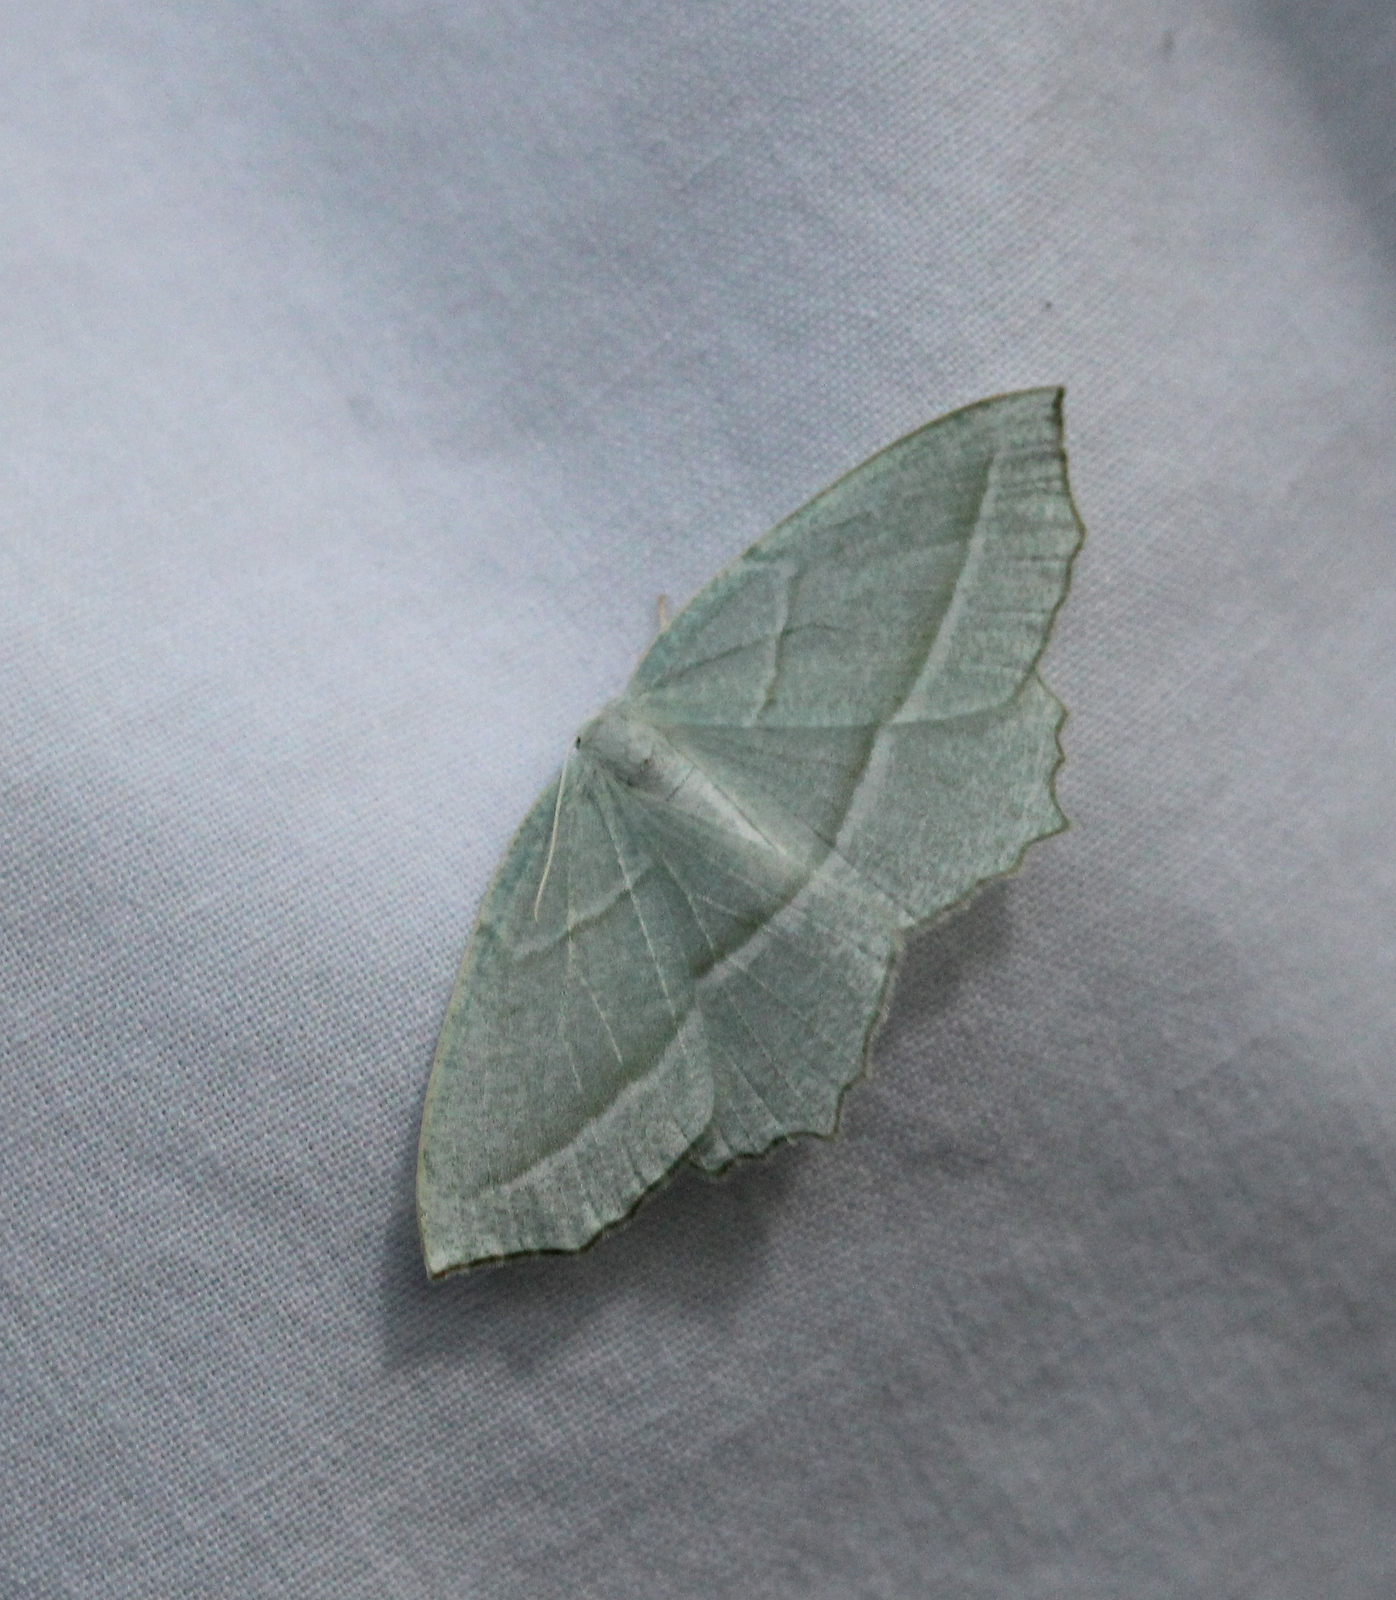 pale/green-white moth